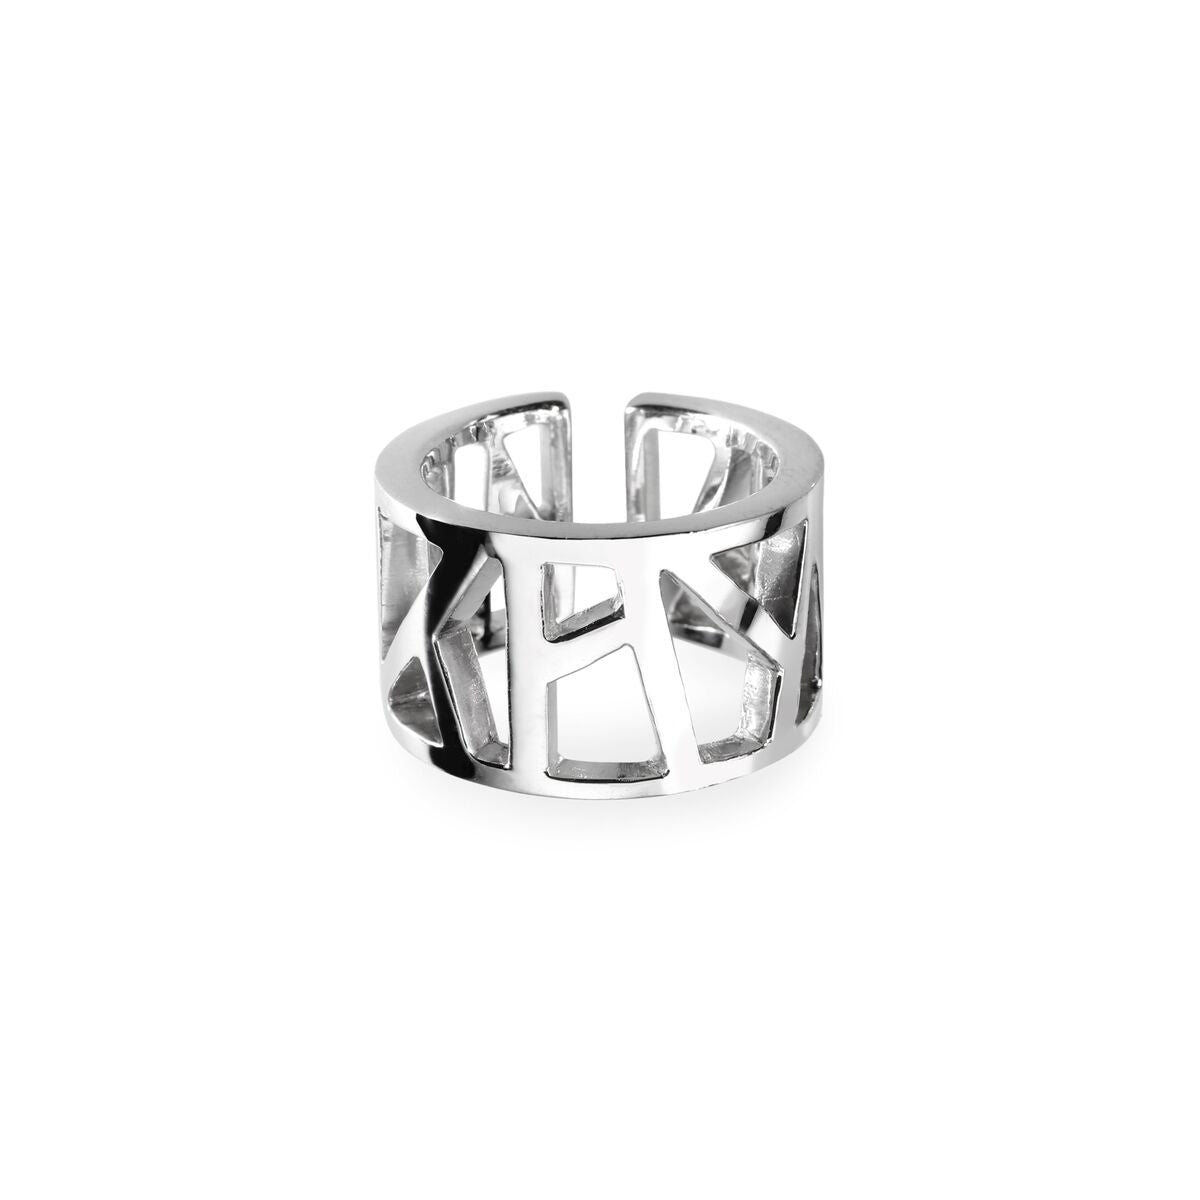 Lattice Open Unisex Ring rhodium